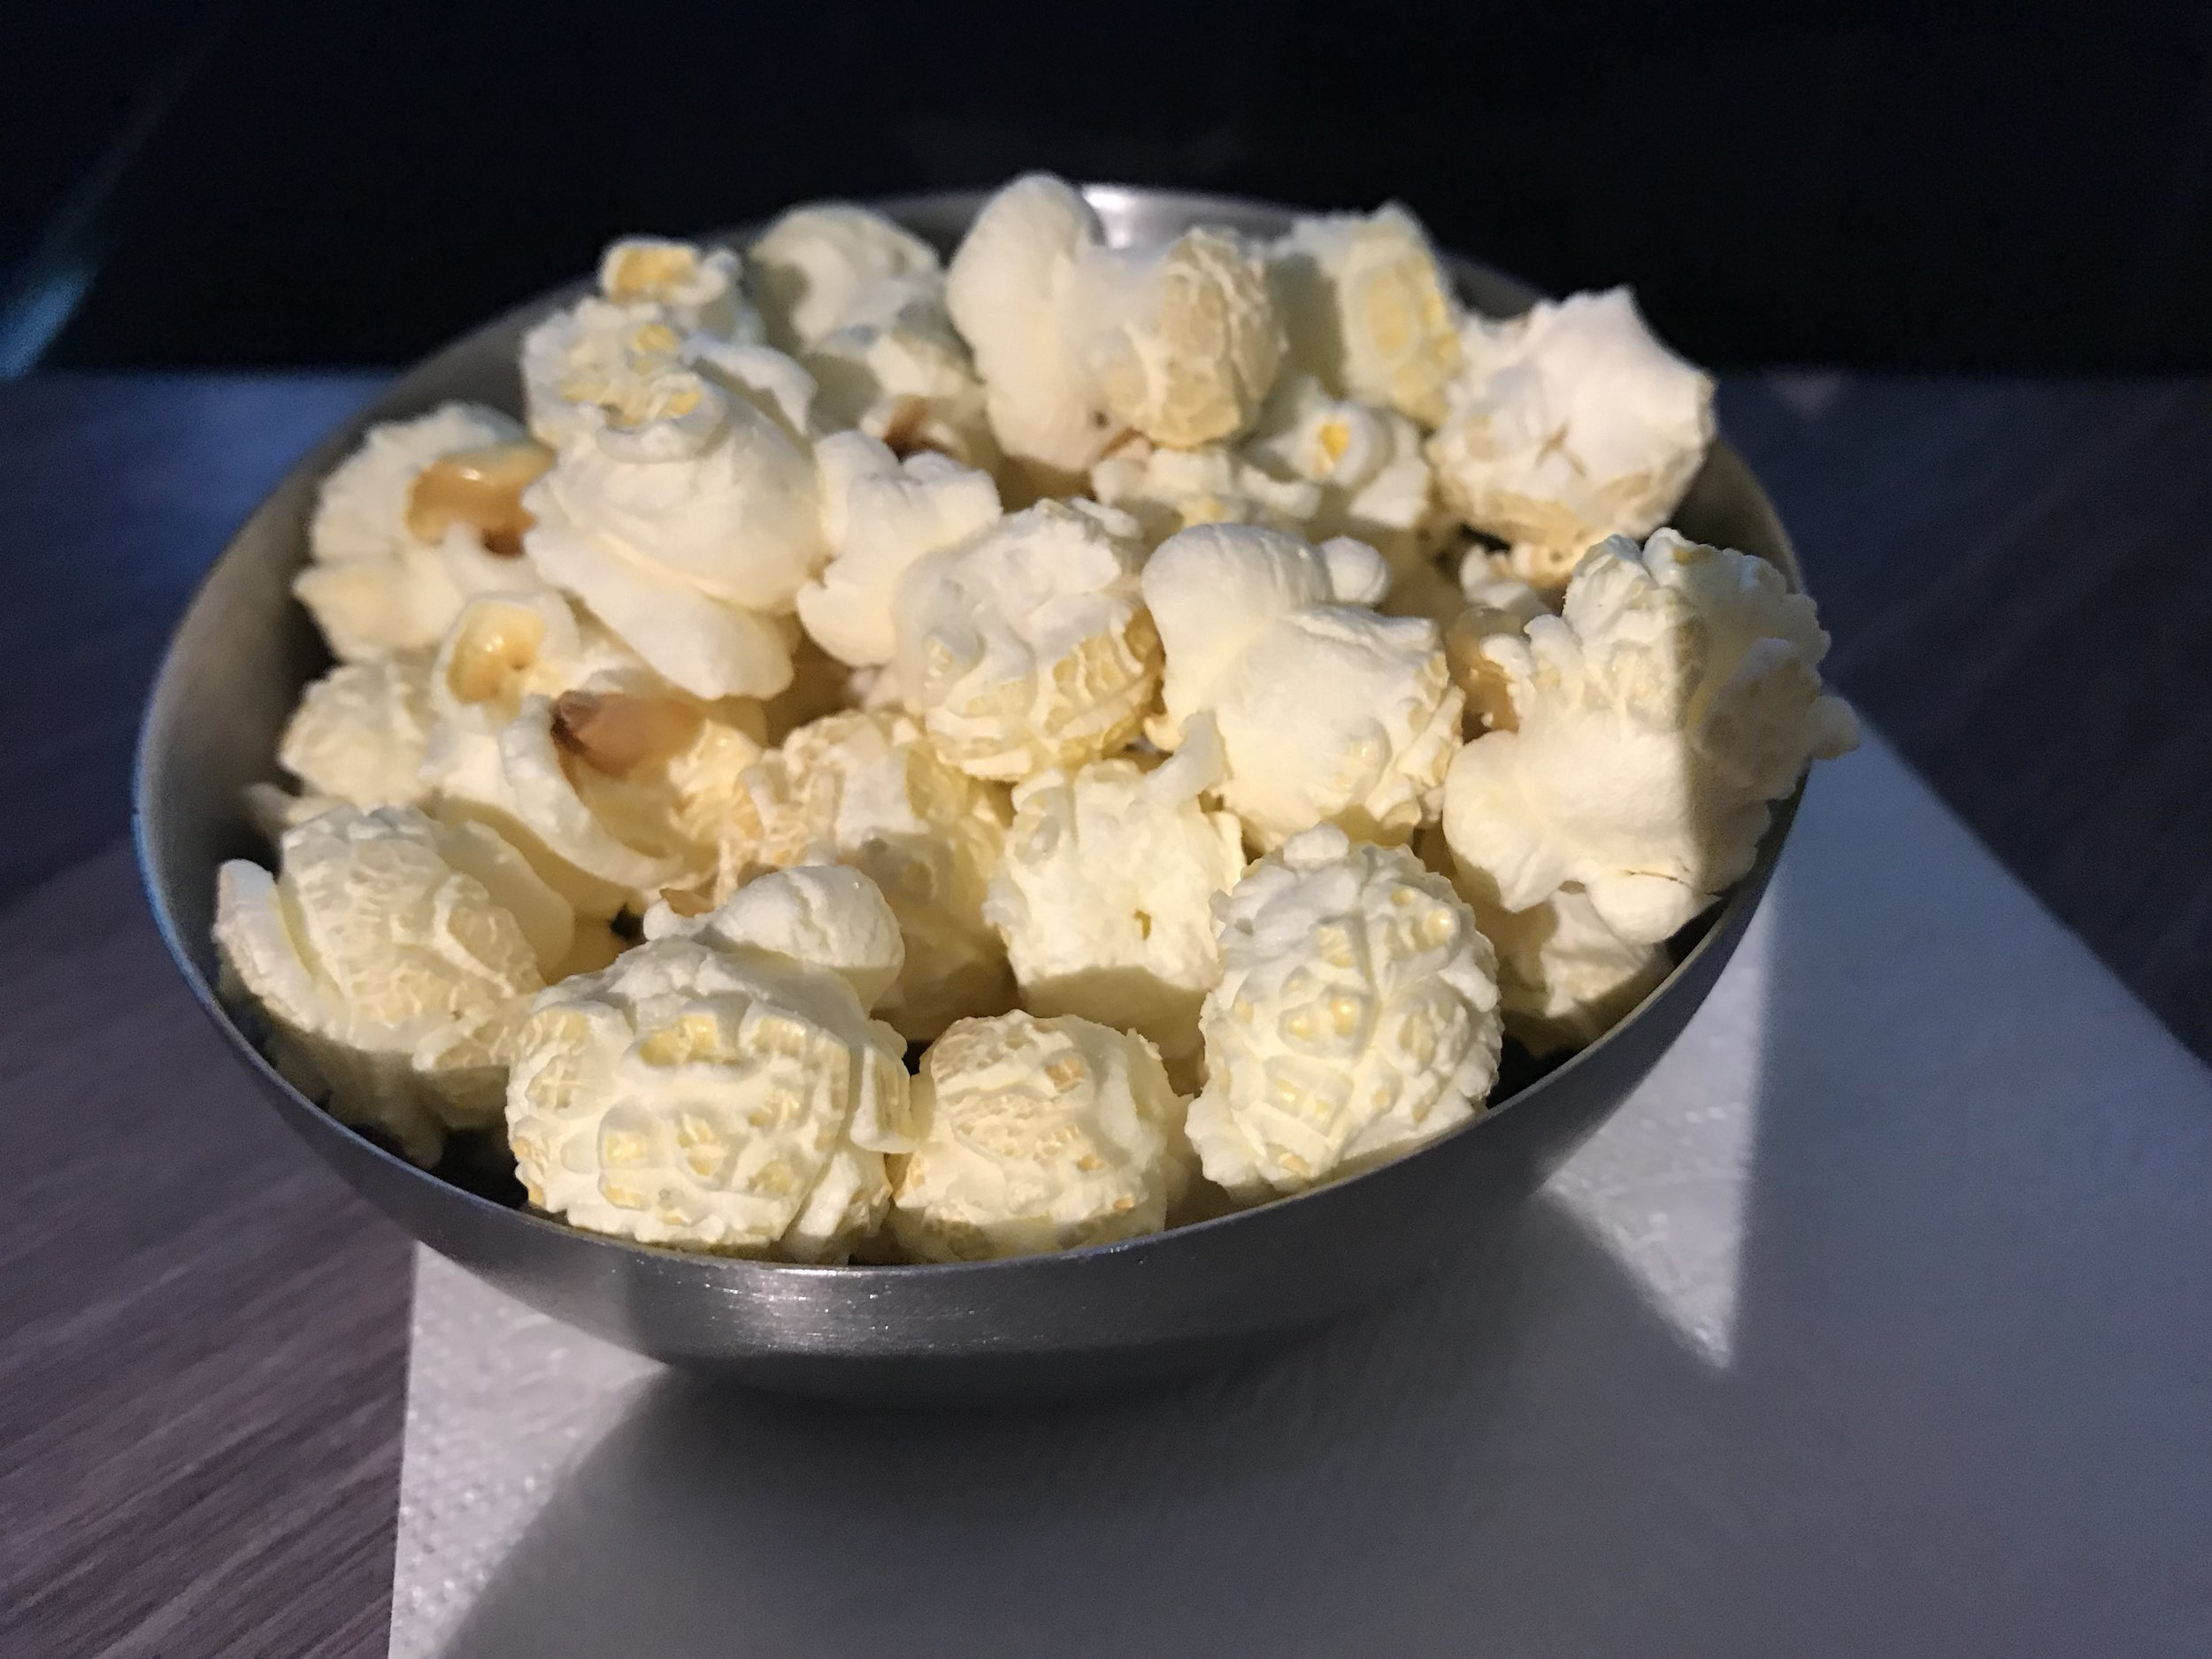 Truffle-flavoured popcorn served just after takeoff